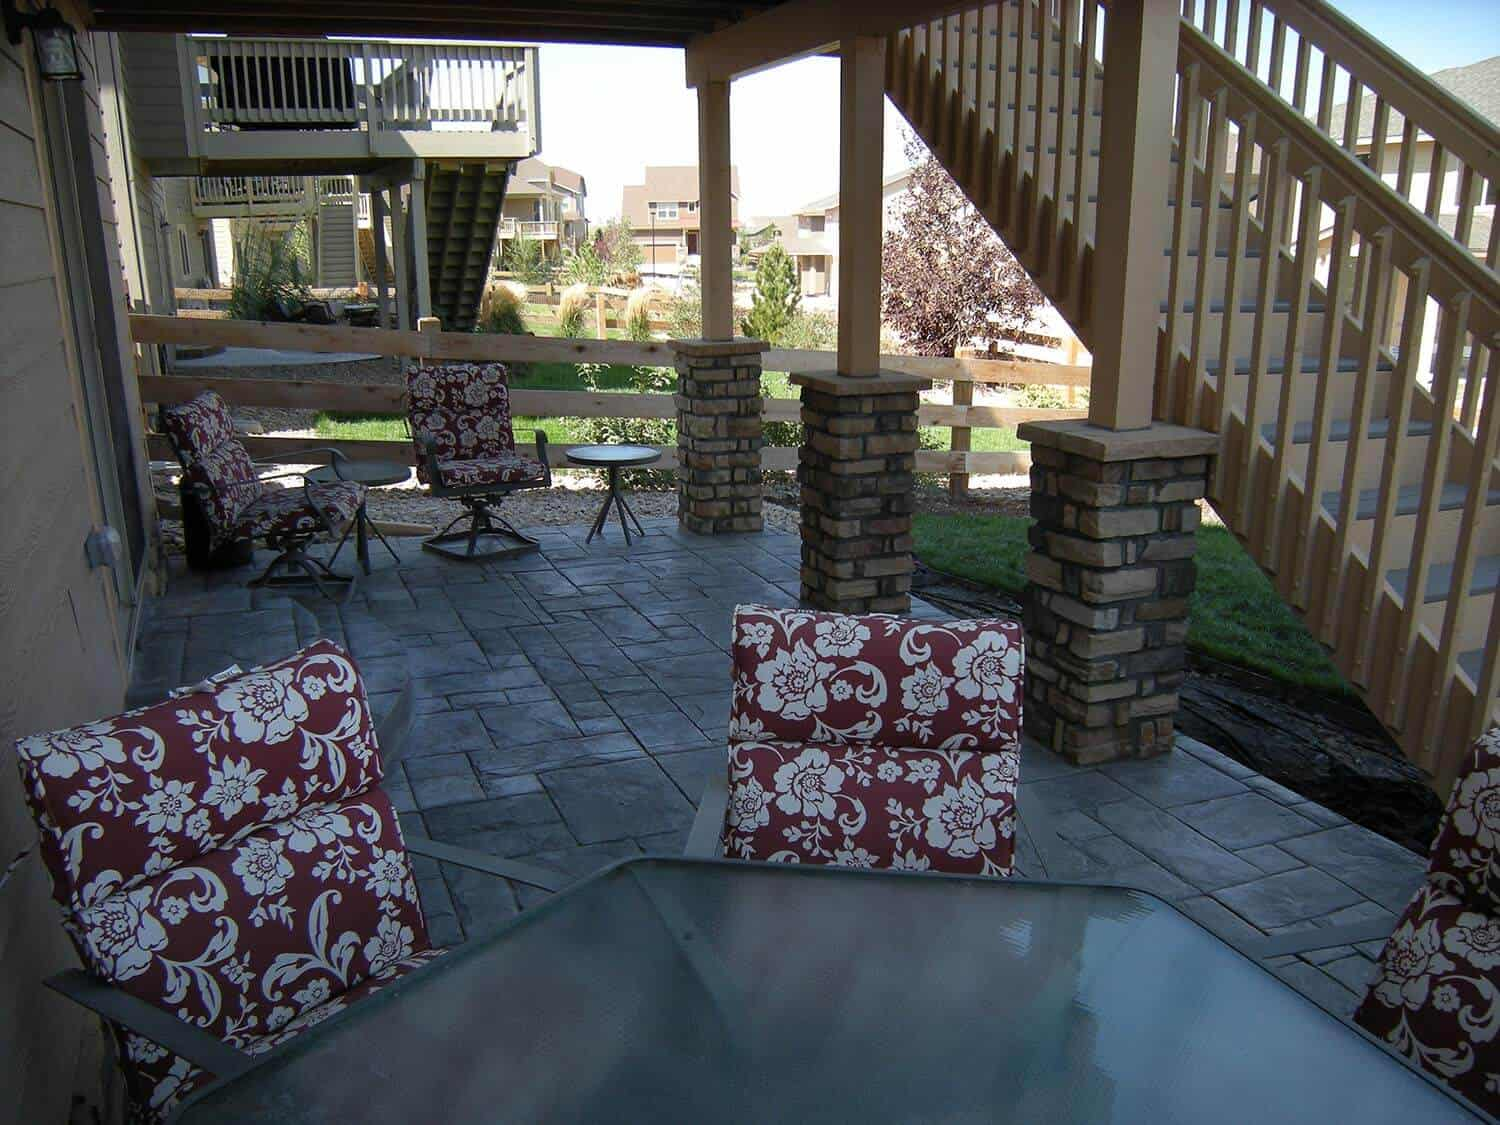 Concrete Patio with Floral Seating